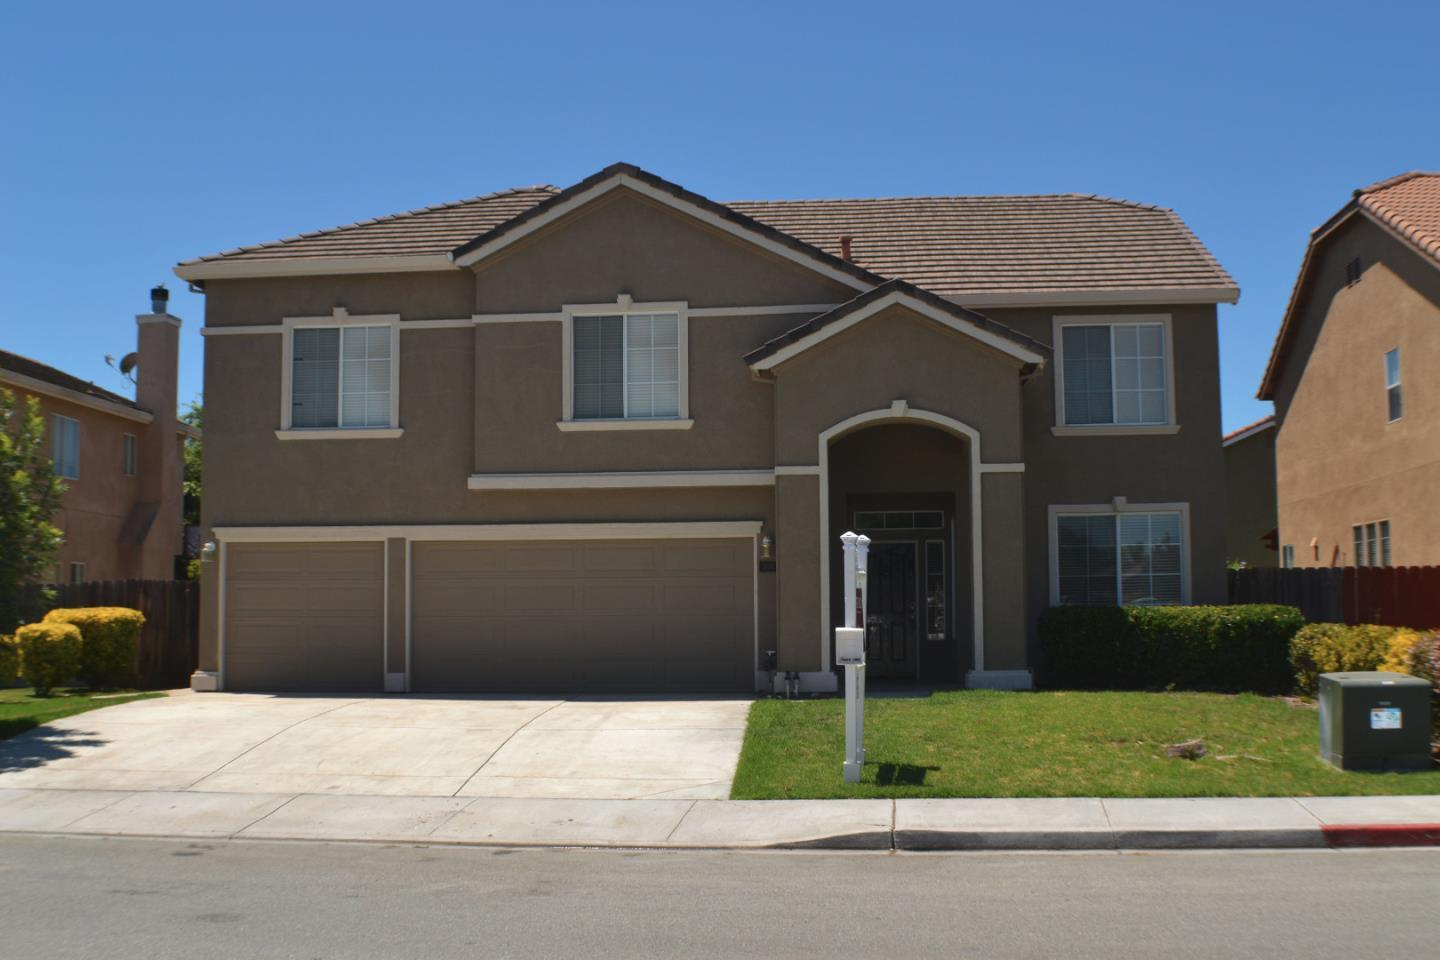 2170 glenview dr hollister ca mls 81670748 ziprealty